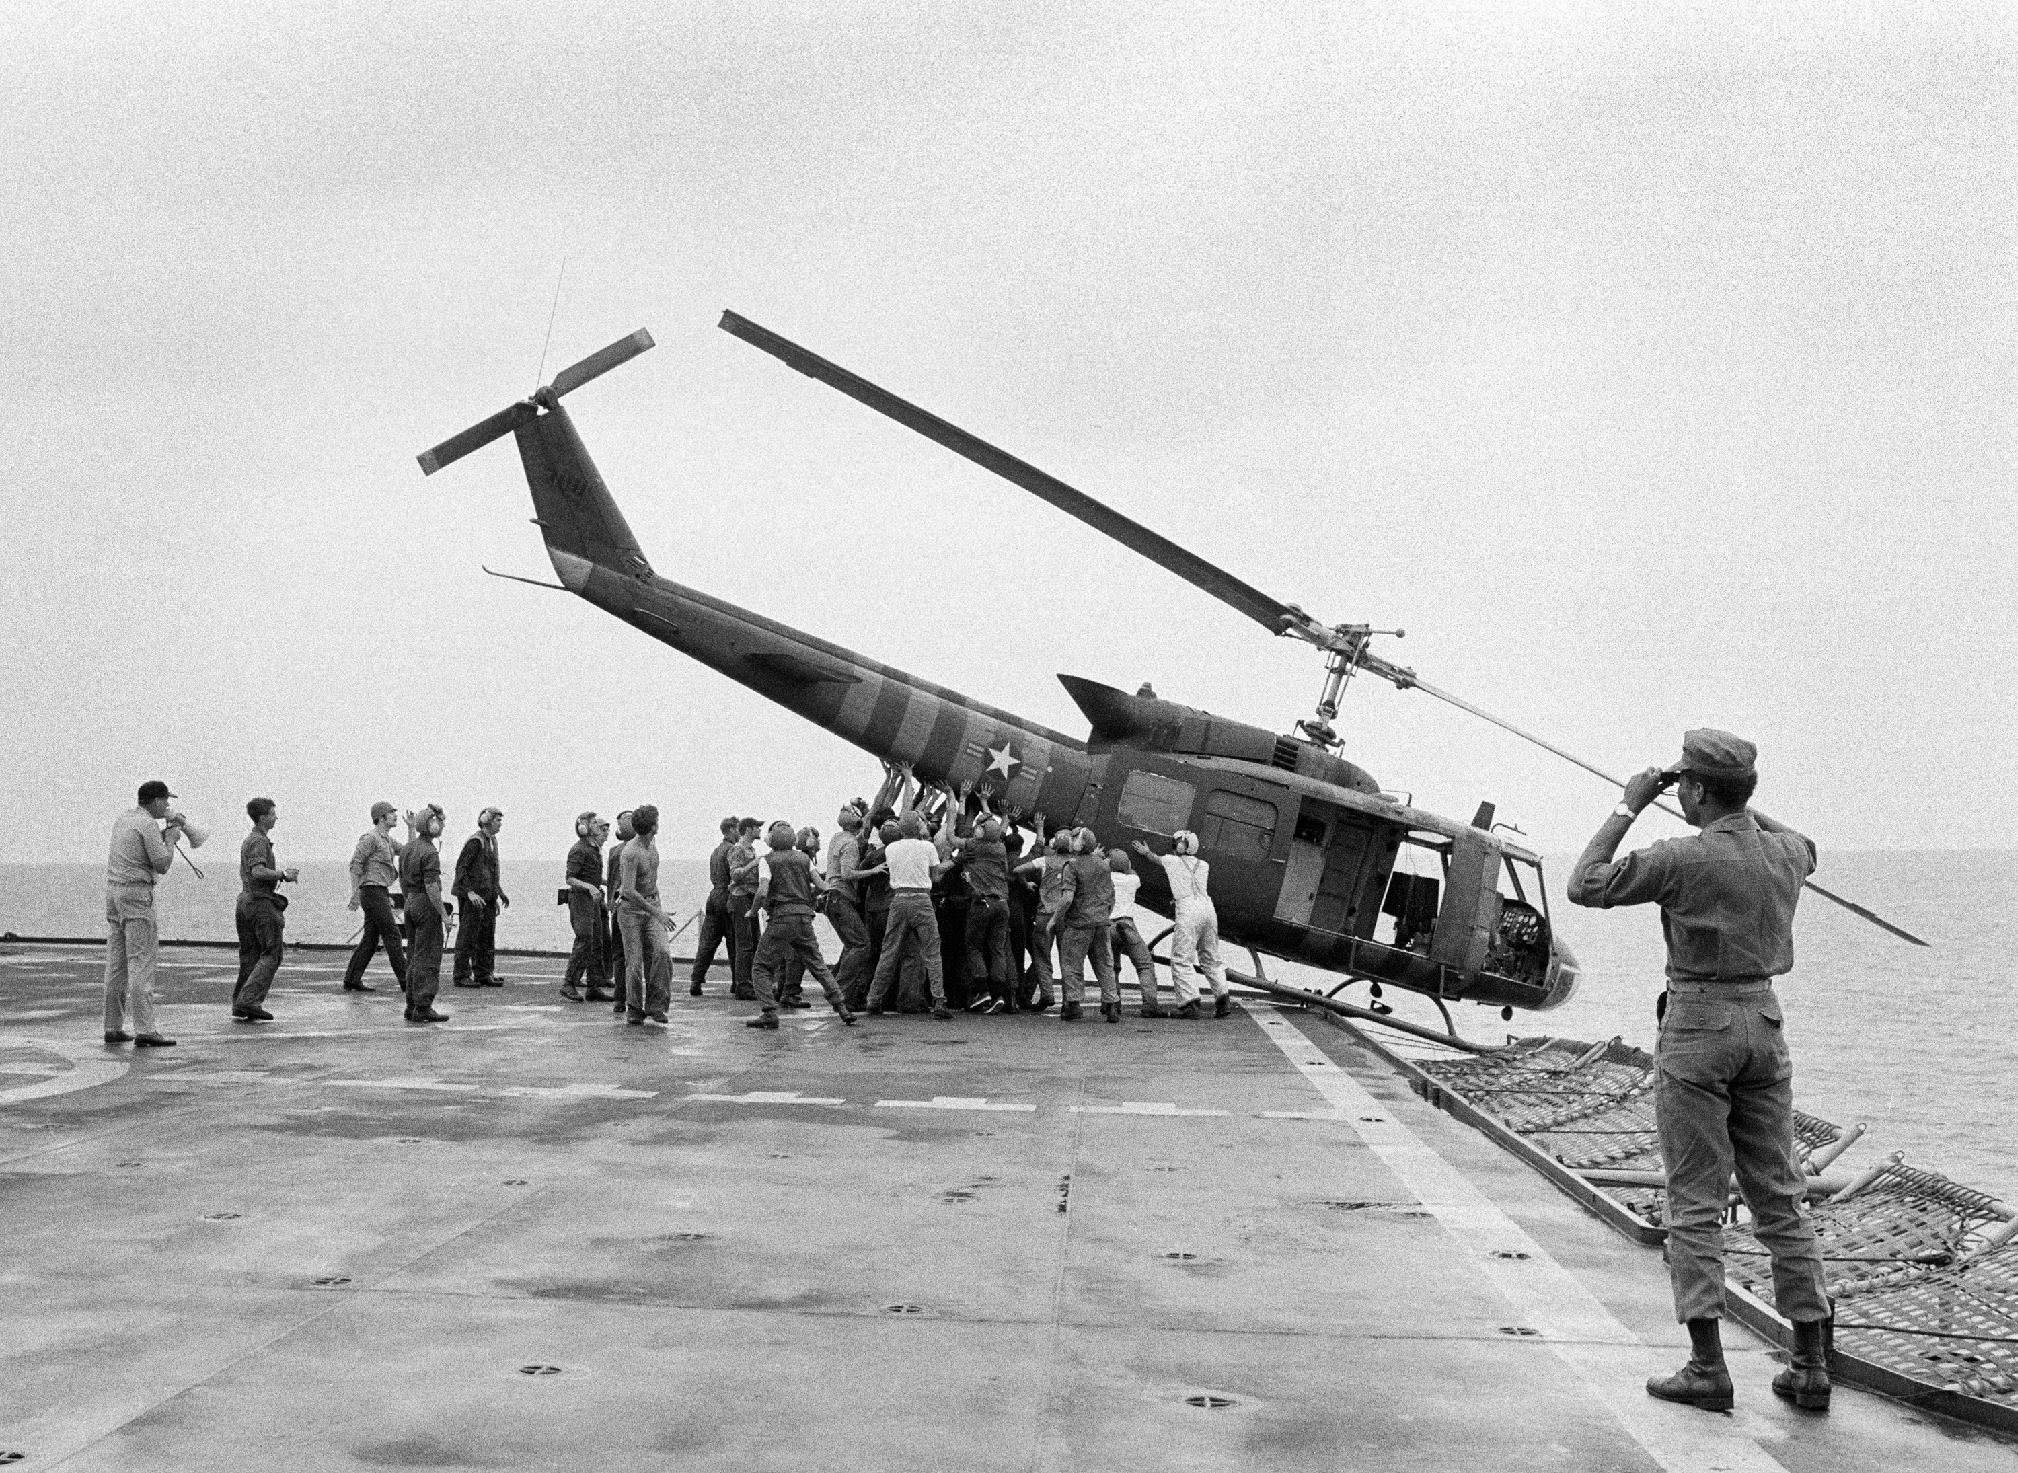 Vietnam War: The fall of Saigon